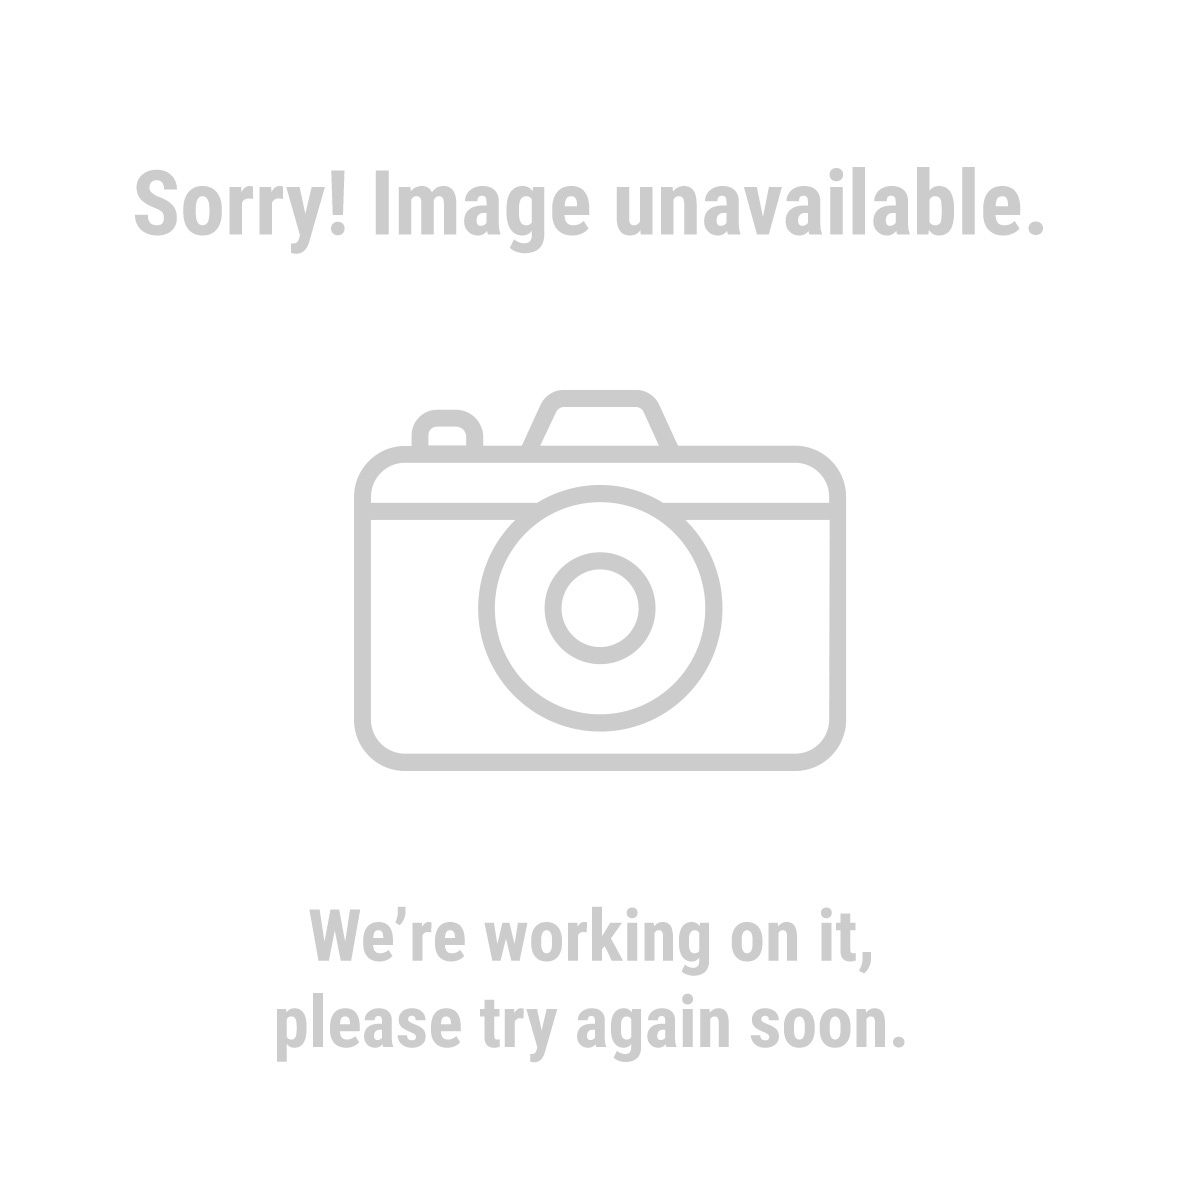 Greyhound 65761 30 Ton Log Splitter with 9 HP Engine